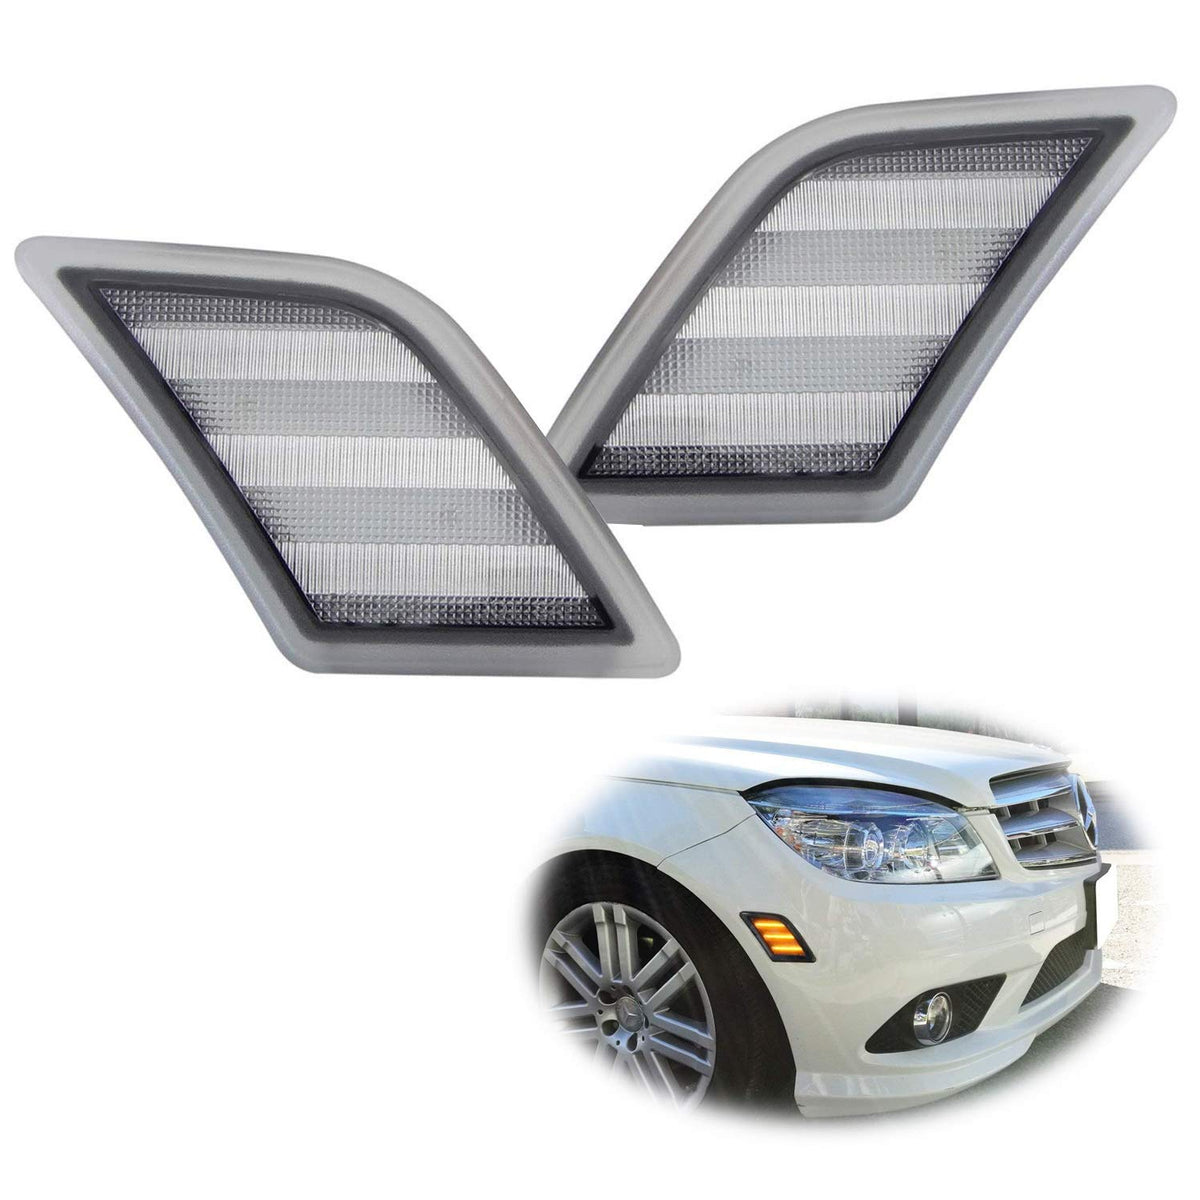 Amber Full LED Front Side Marker Light Kit For 2008-11 Mercedes W204 C250  C300 C350 & 2008-2013 C63 AMG, Powered by 48-SMD LED